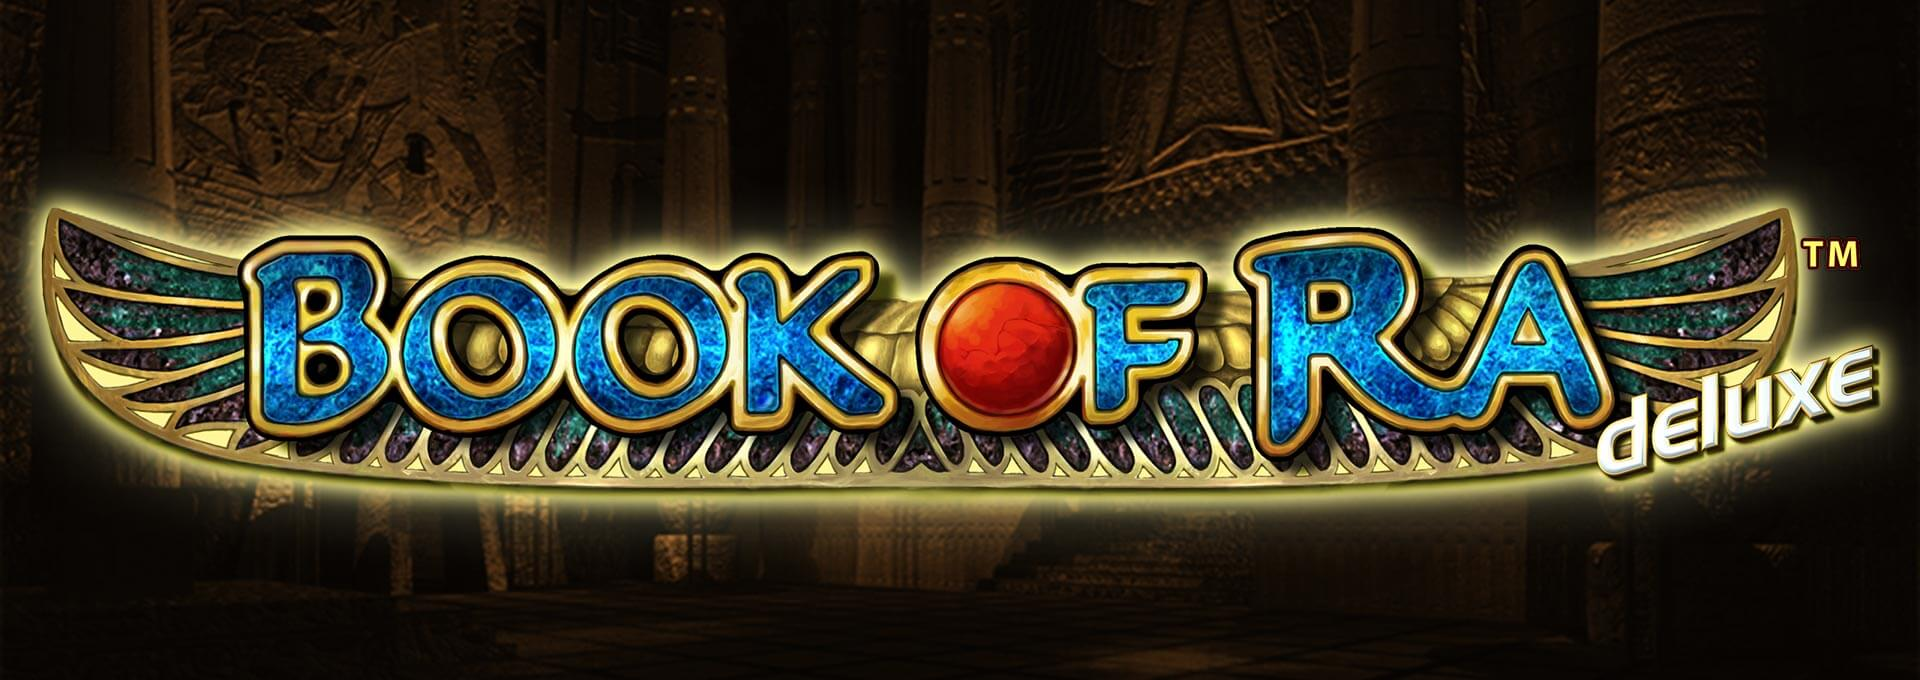 online slot casino book of ra runterladen